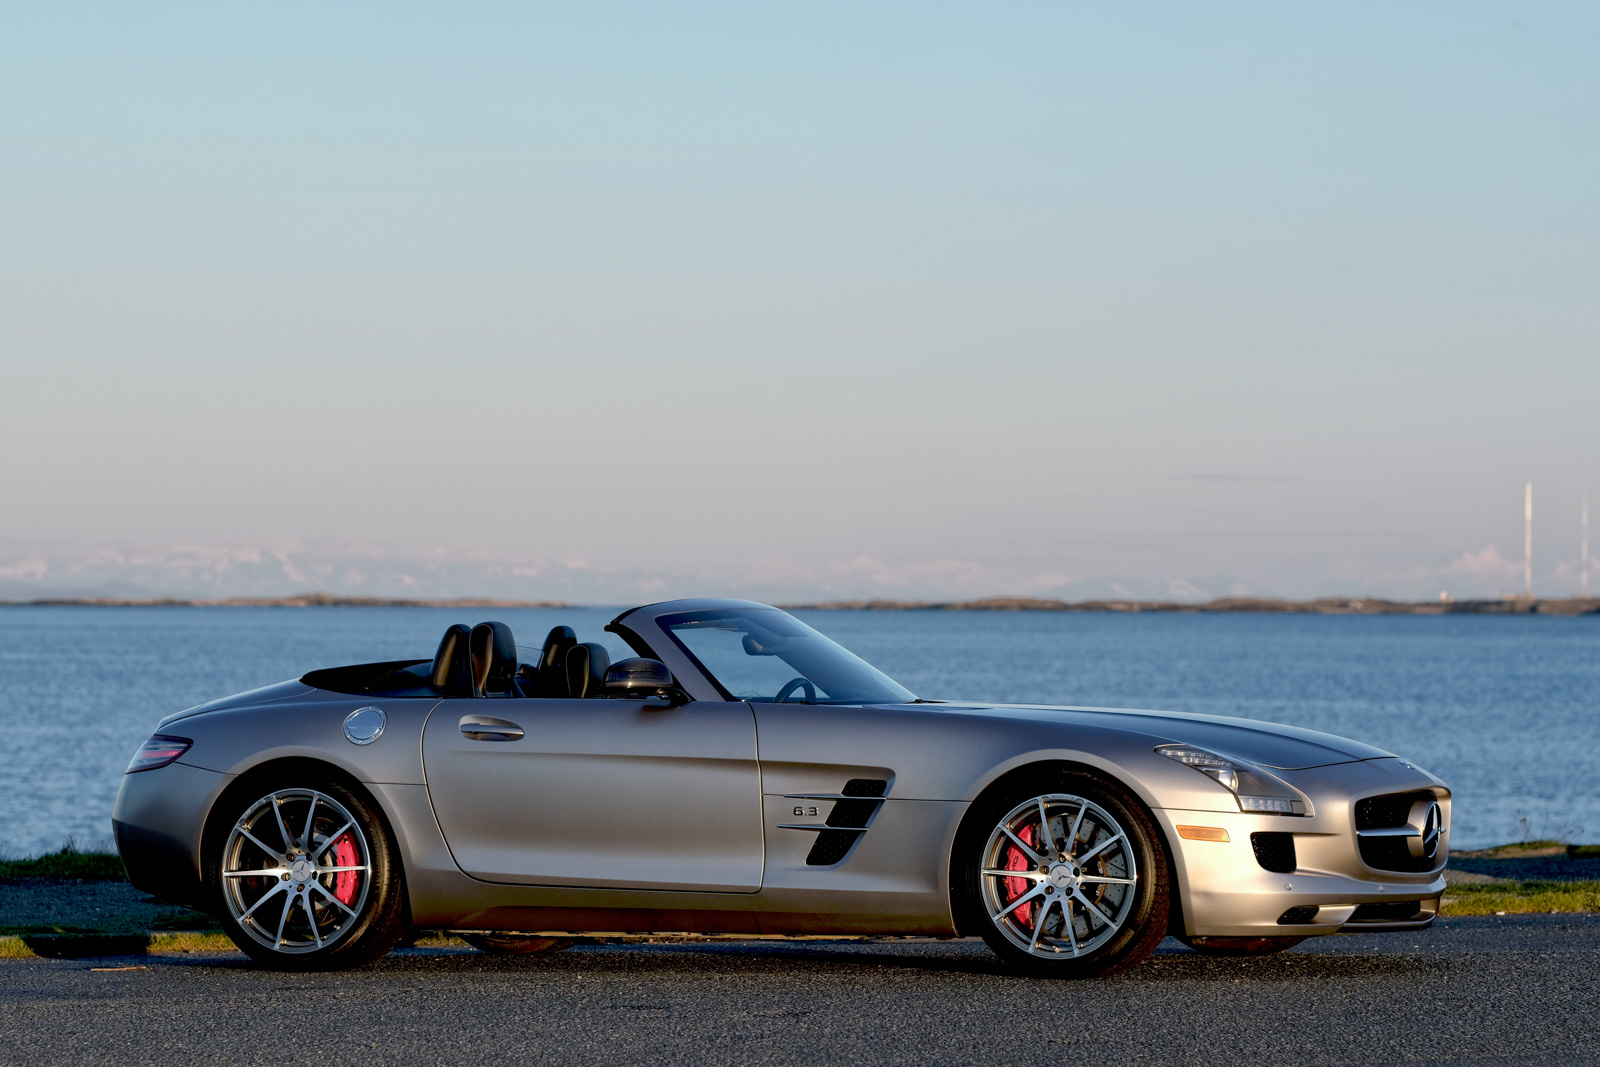 2012 Mercedes-Benz SLS AMG Roadster for sale